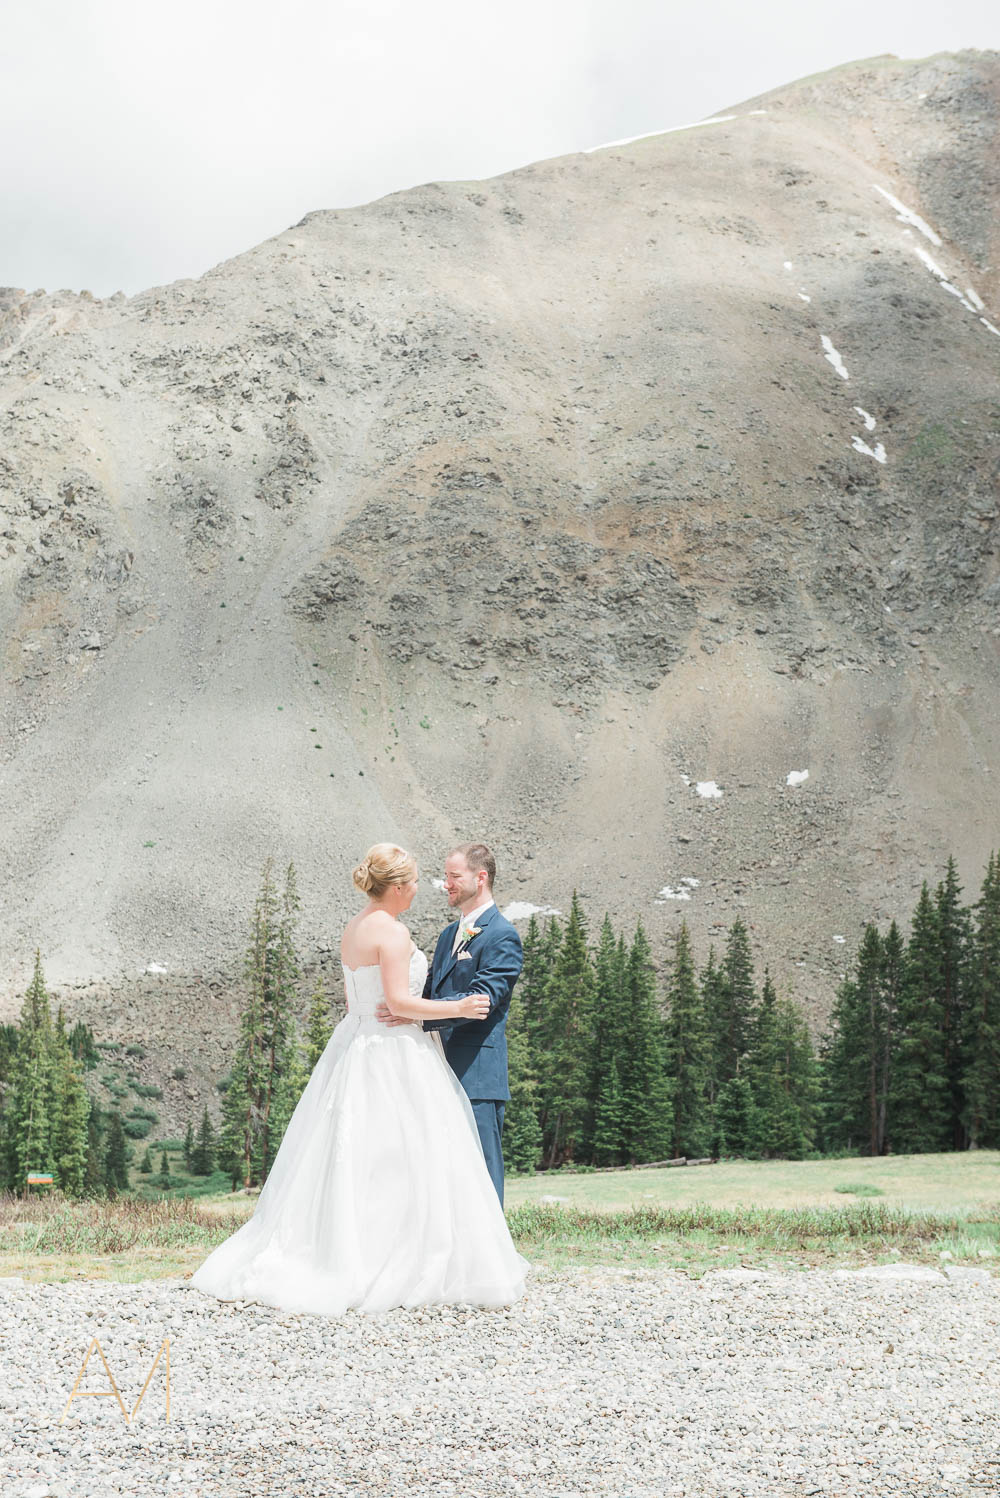 AshleighMillerPhotography-FirstLook-Colorado-Weddings-1642.jpg